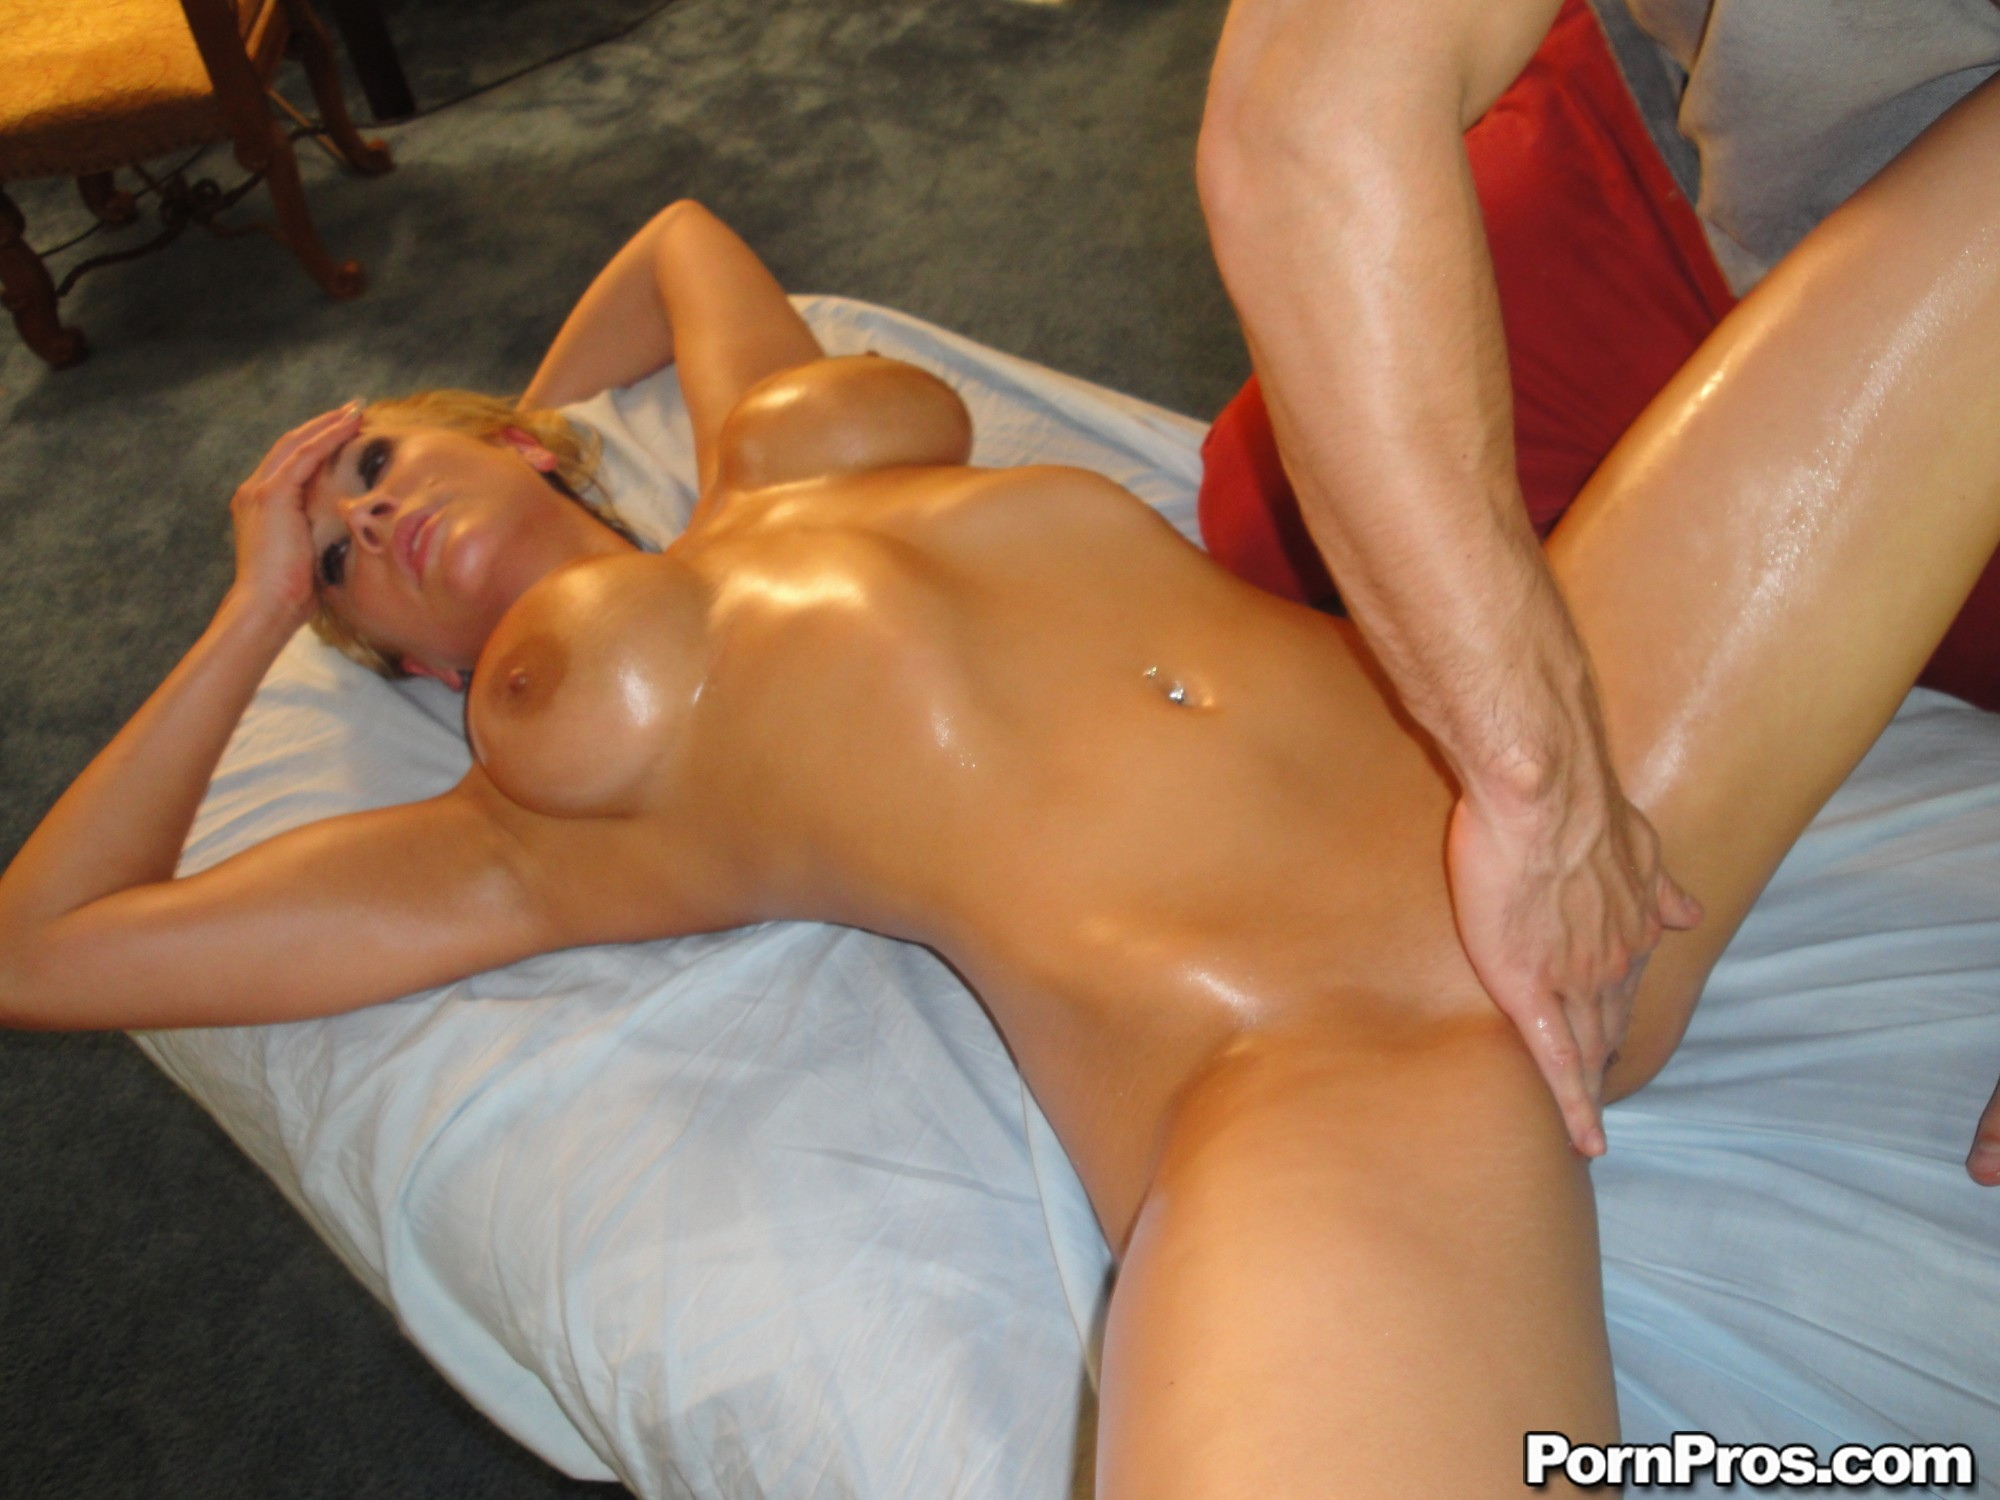 nude blonde women and musculed men